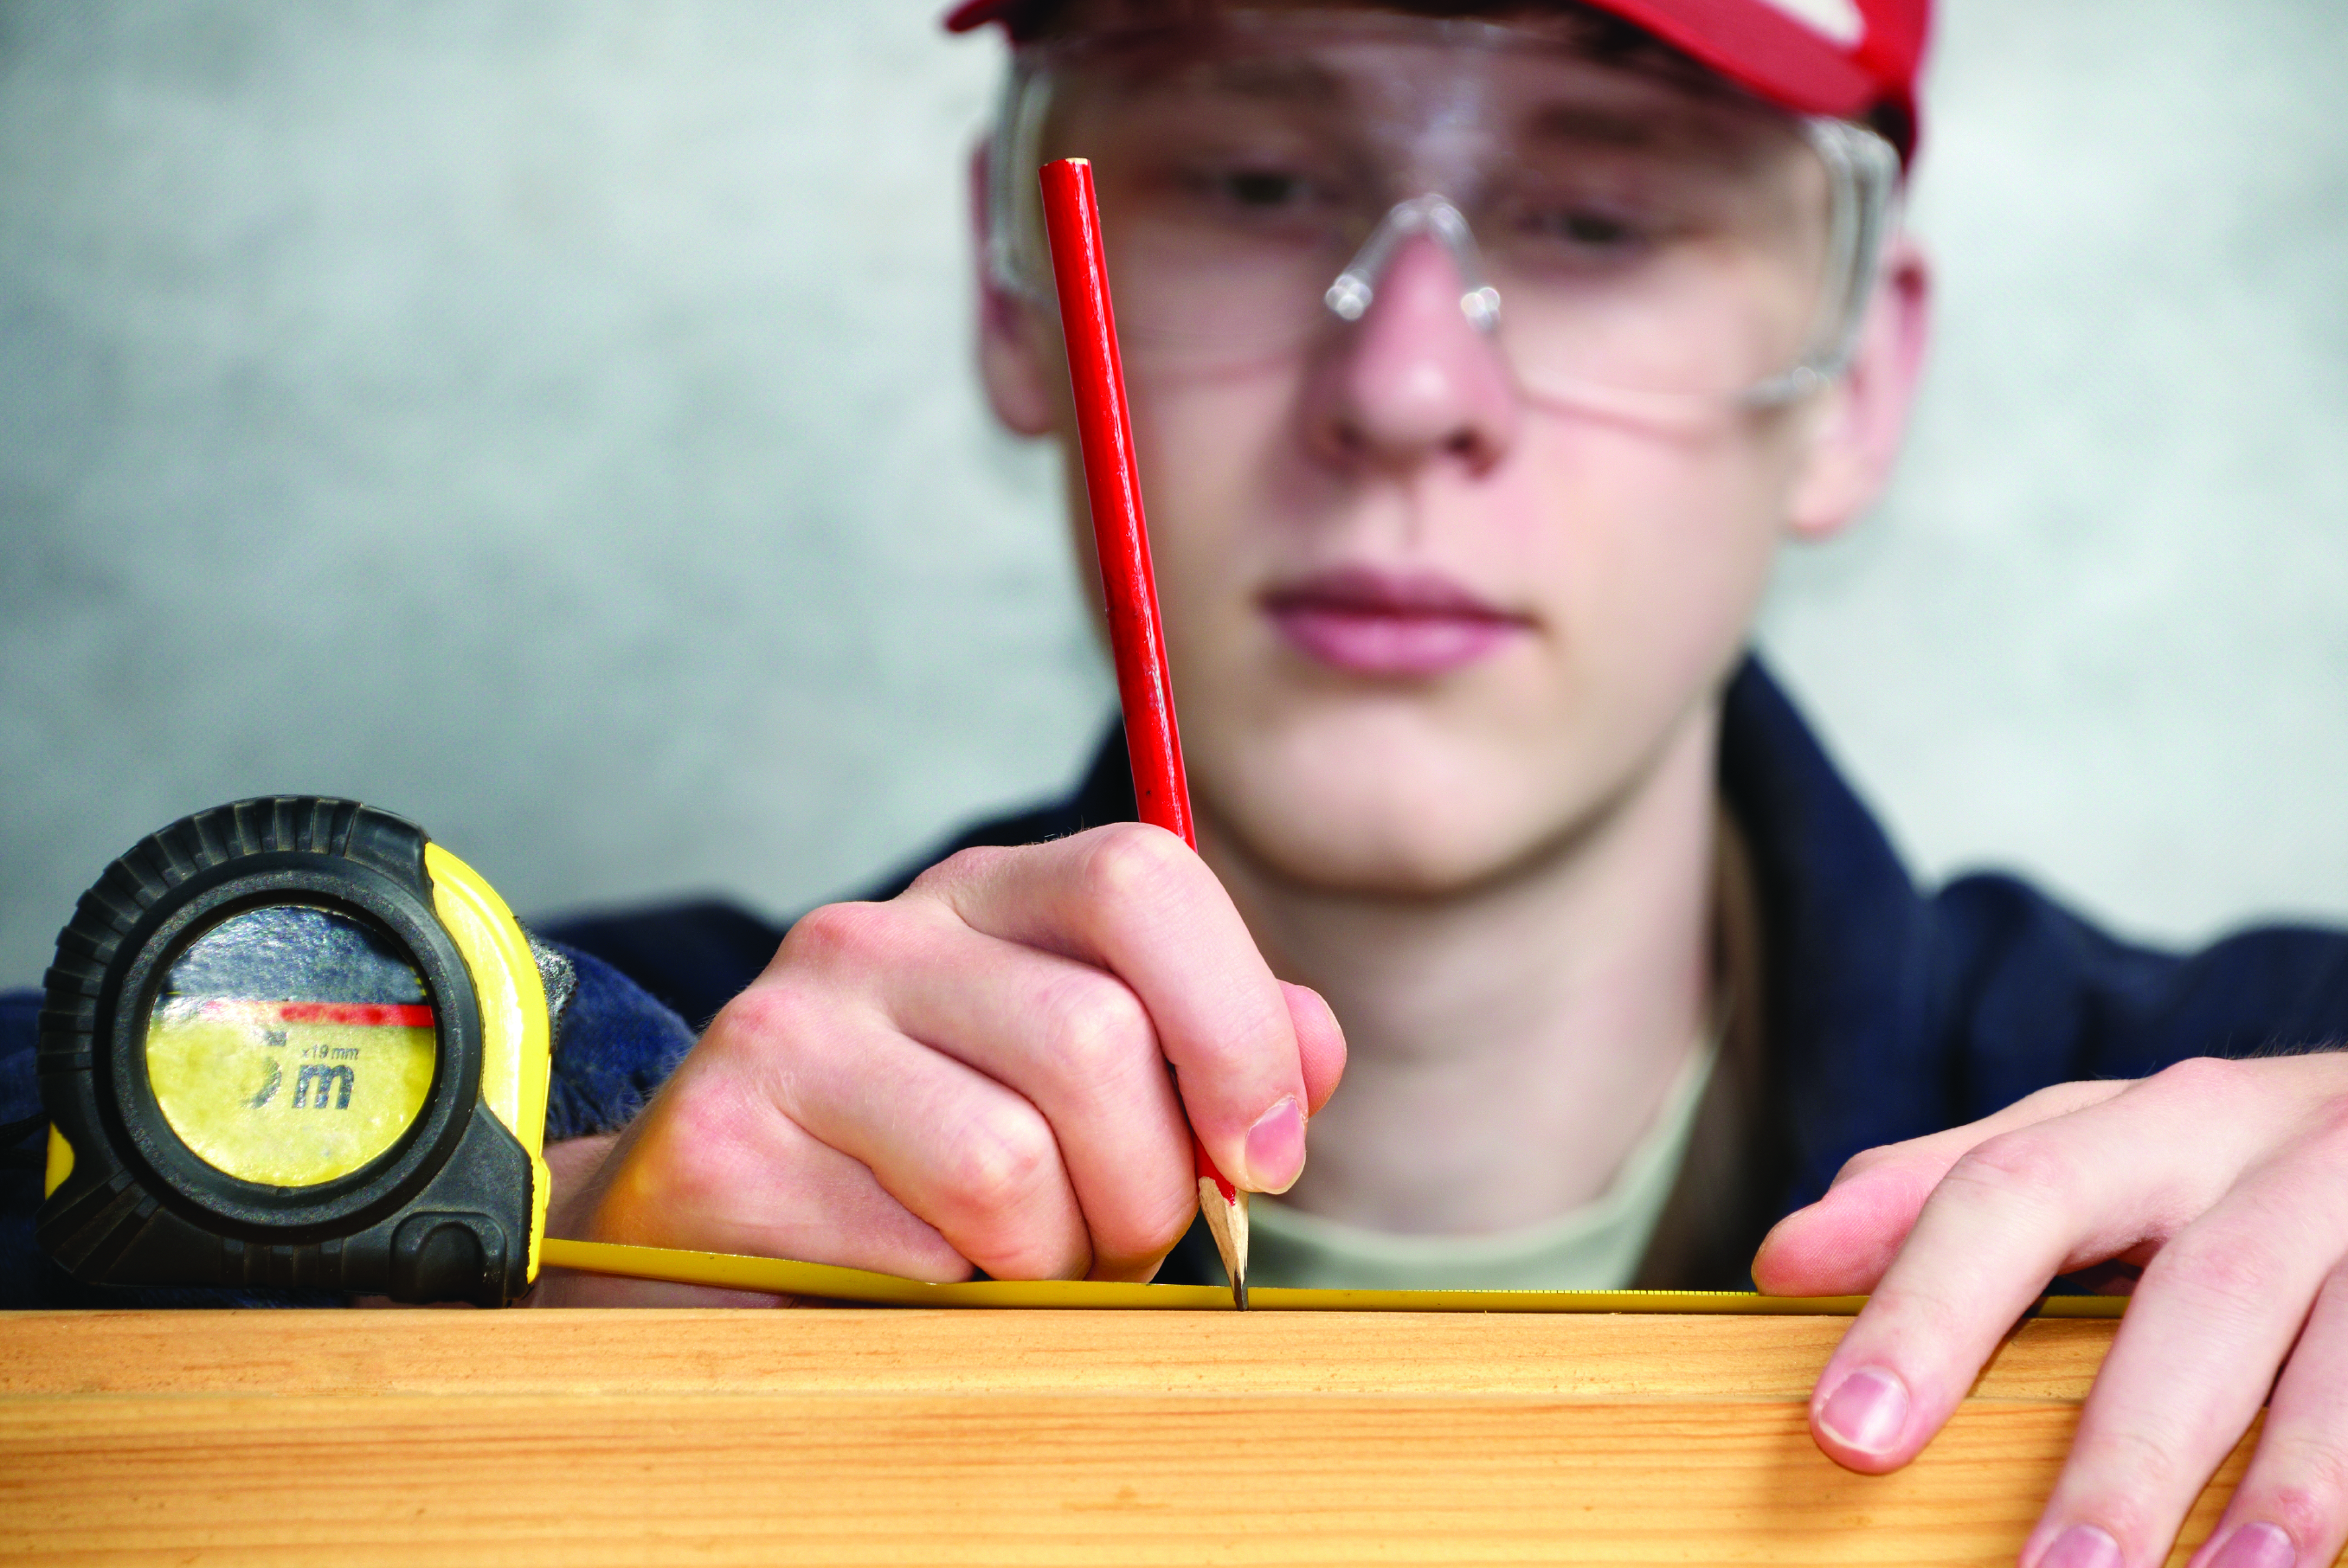 Training and skills in the woodworking industry